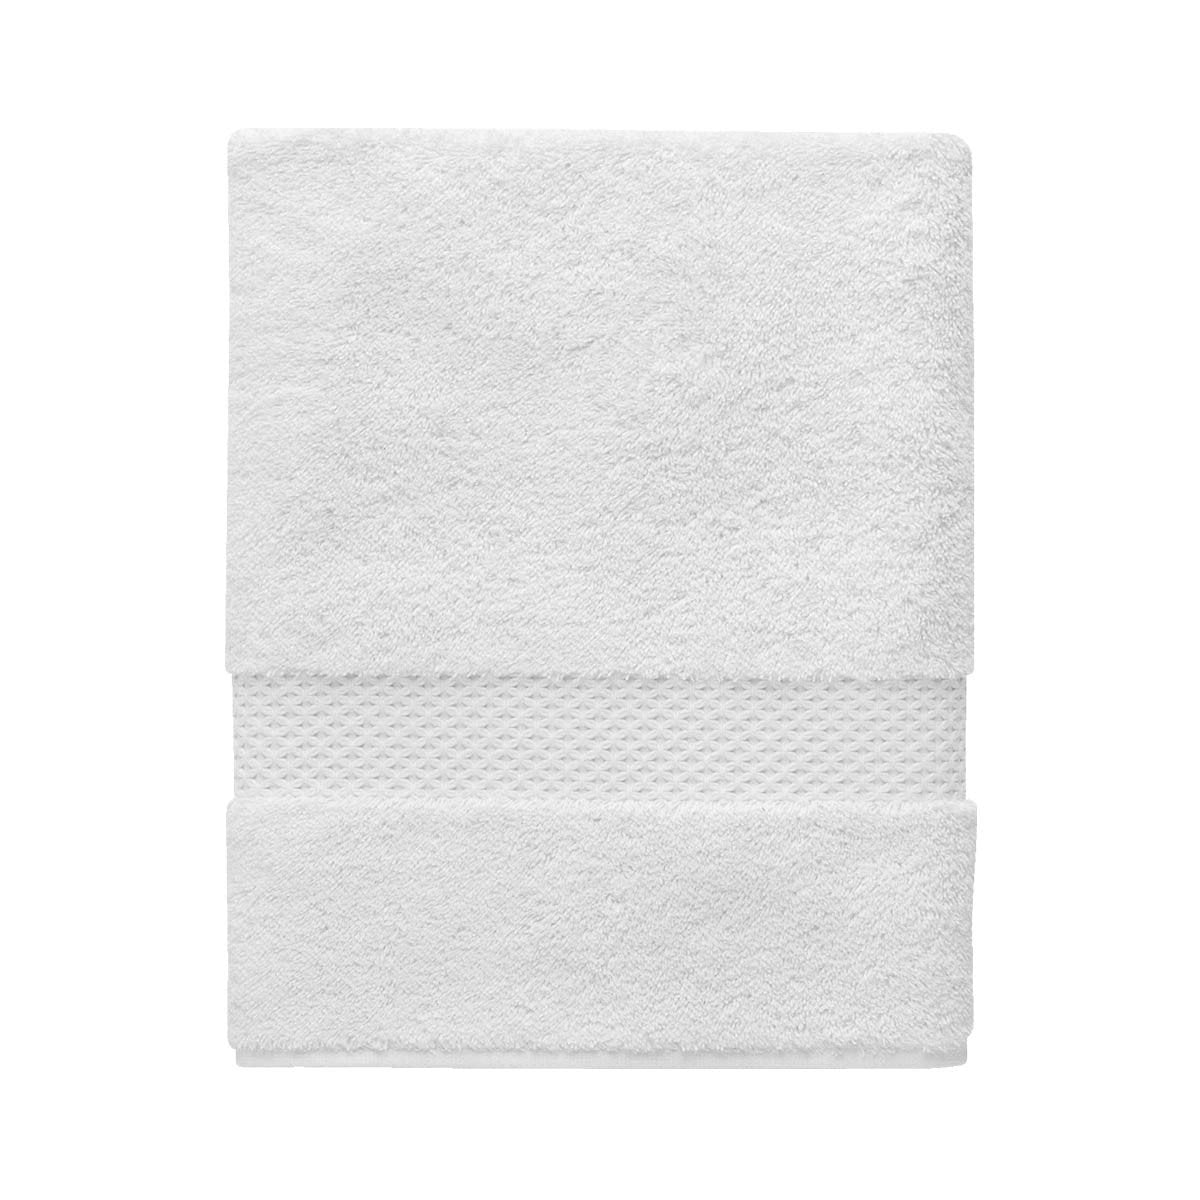 Etoile Blanc Bath Collection by Yves Delorme | Fig Linens - White, bath, guest, hand towel